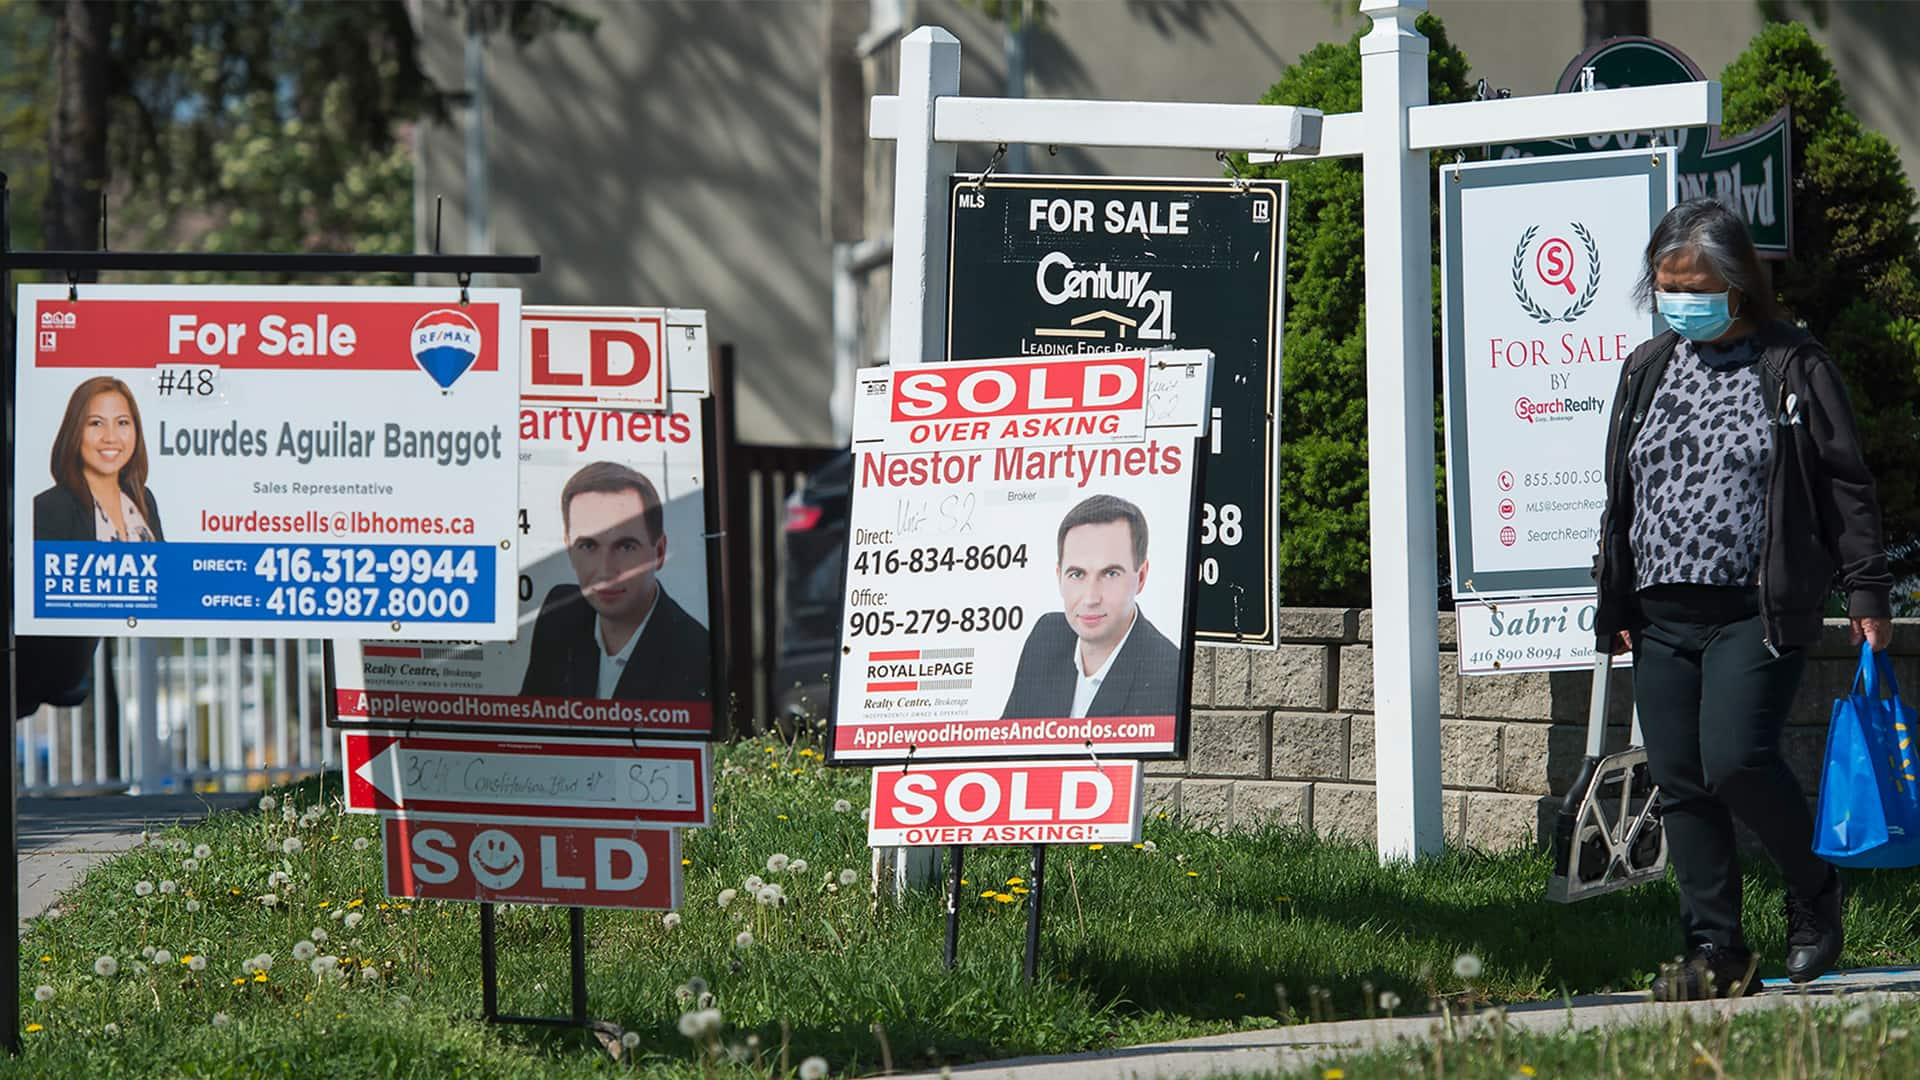 Canada and New Zealand both have hot housing markets, but only 1 has plan to cool things down